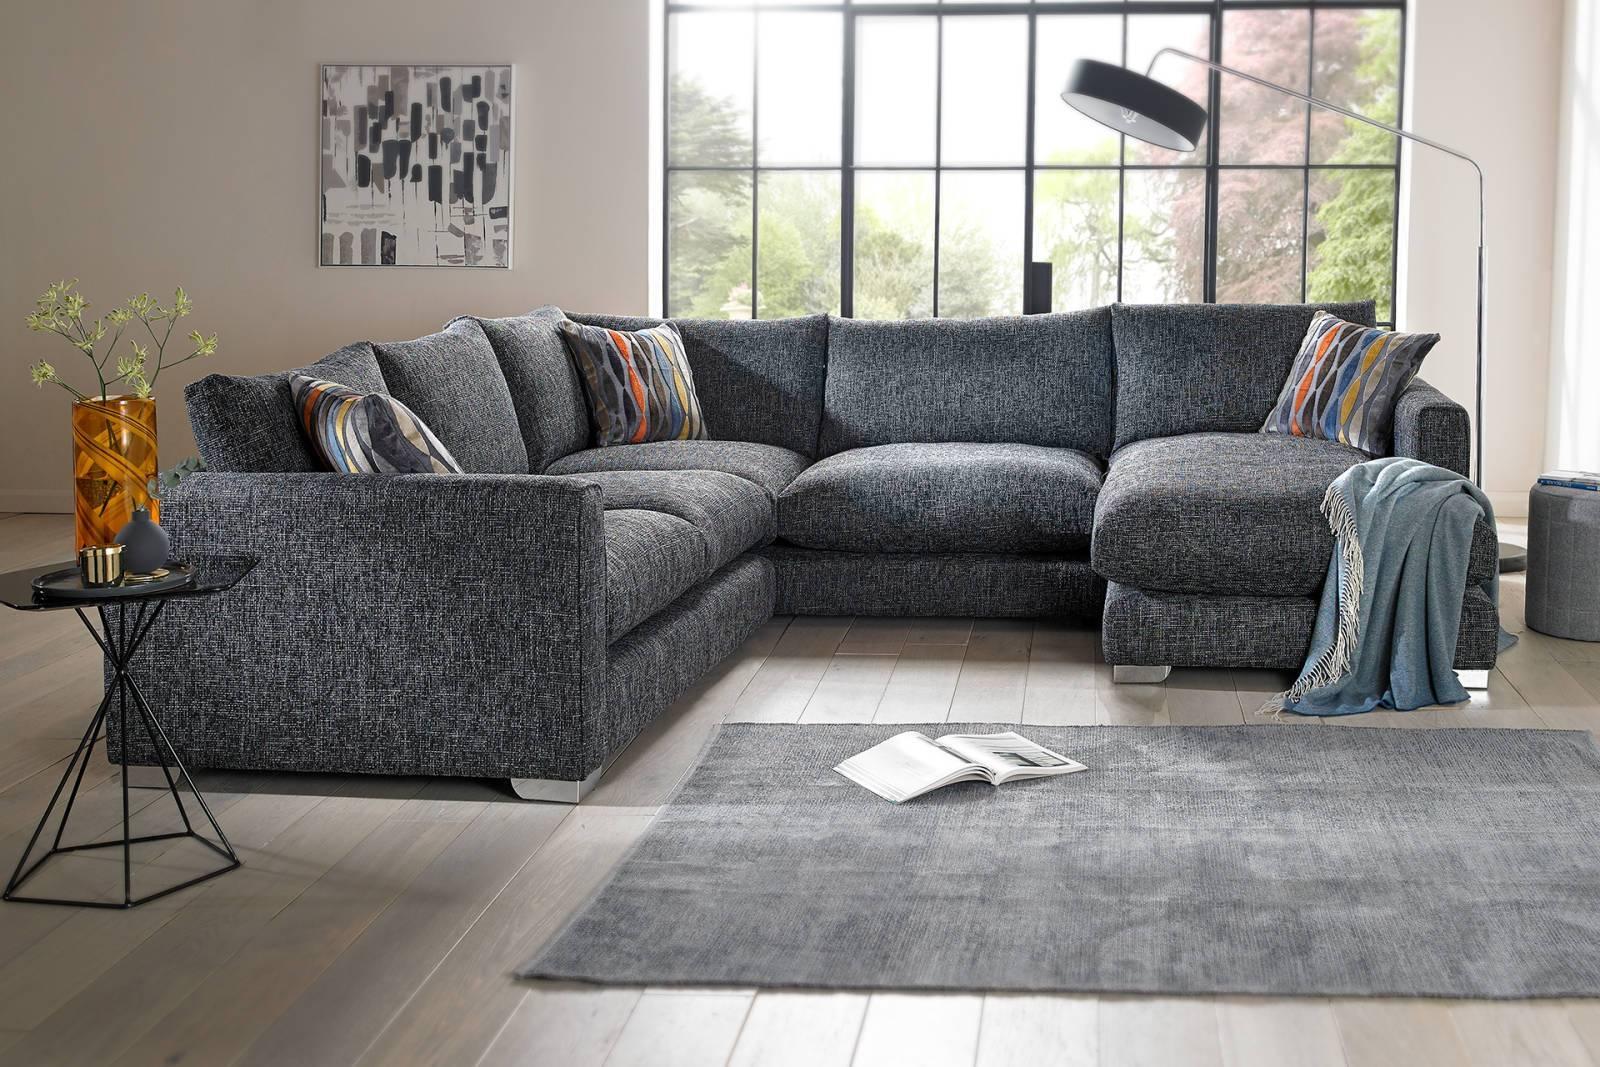 Fabric Sofas, Corners And Chairs | Sofology pertaining to Fabric Sofas (Image 14 of 30)